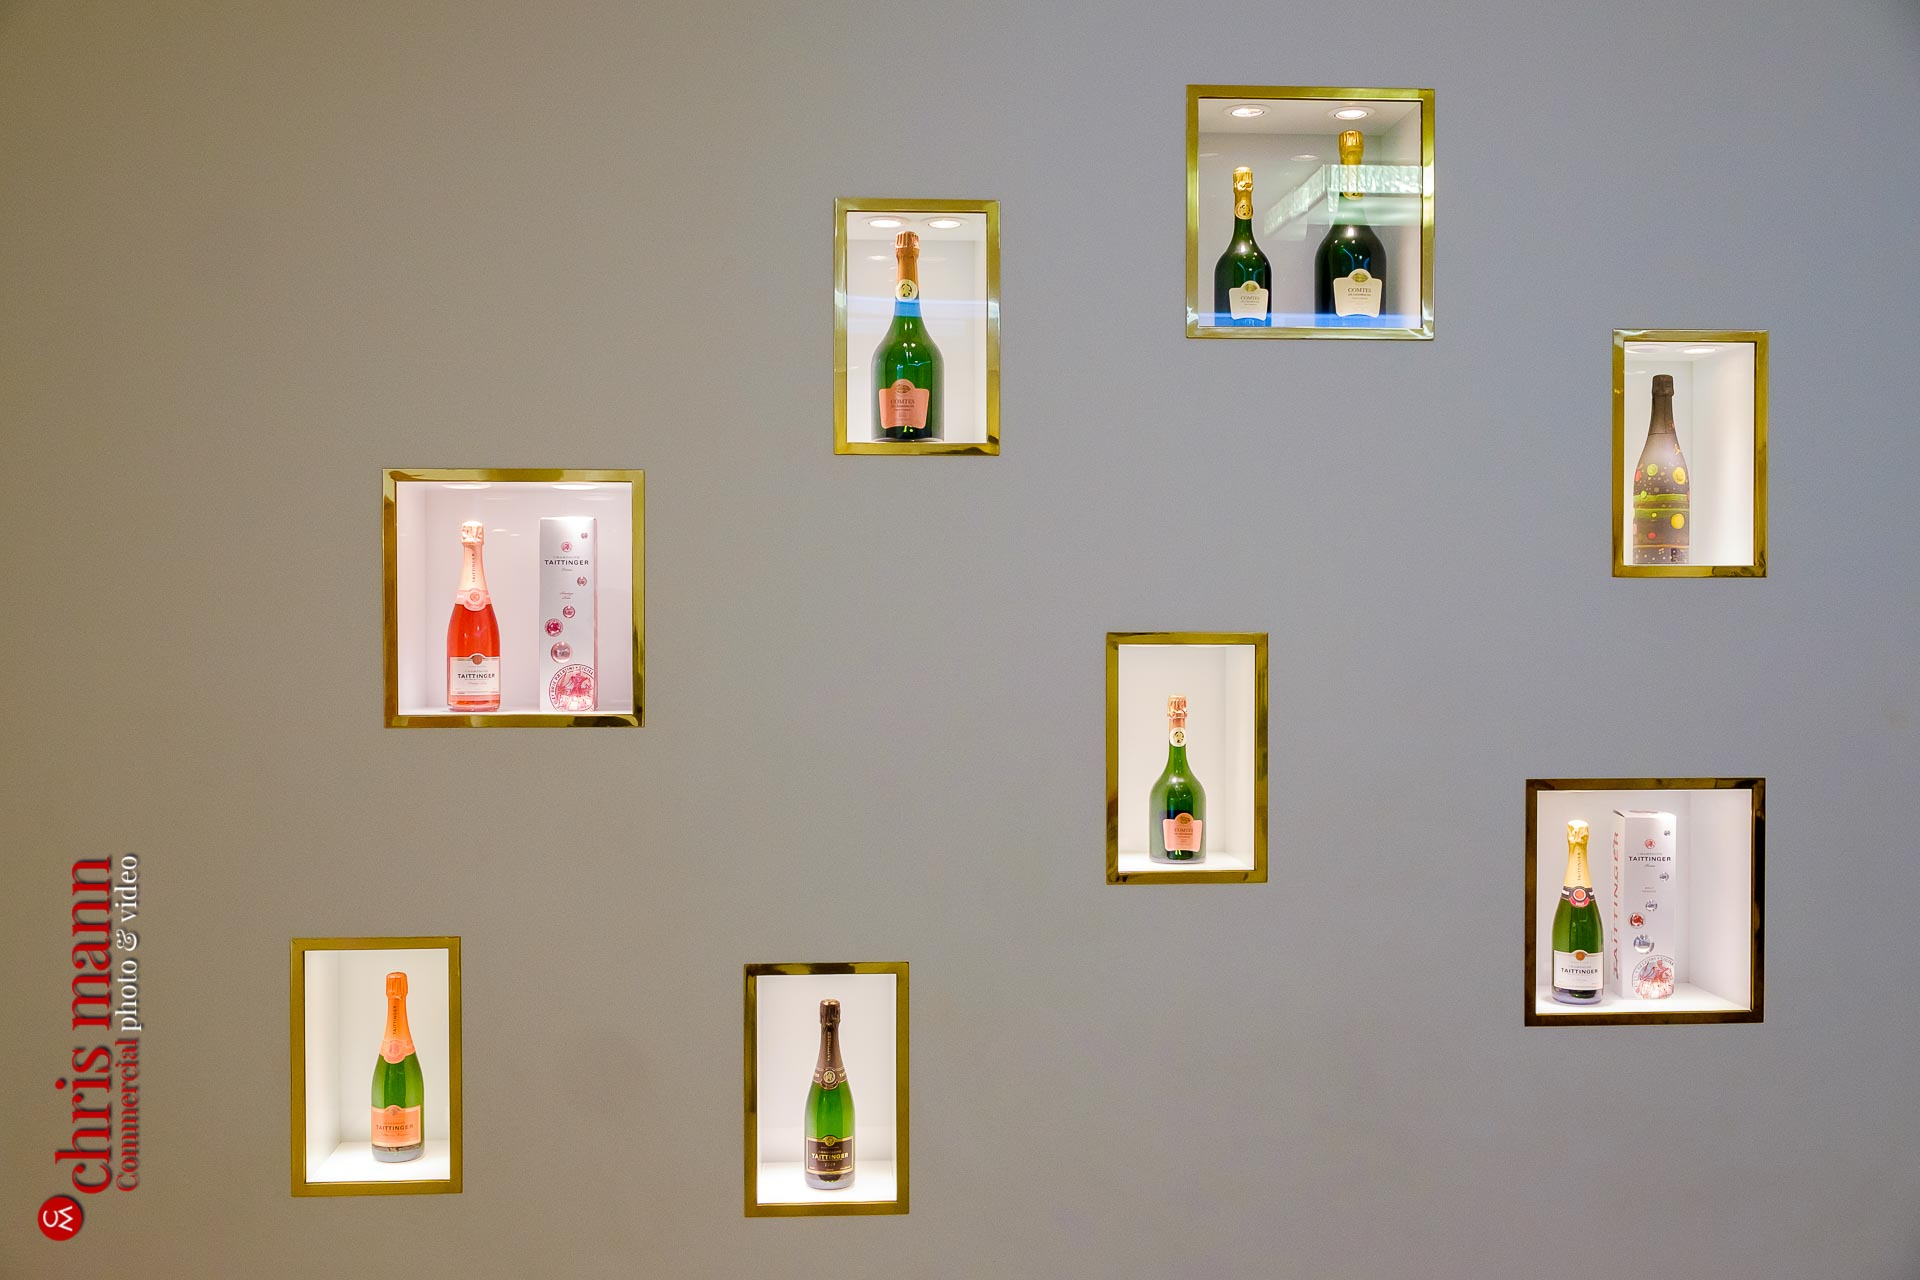 Display of Taittinger champagne bottles